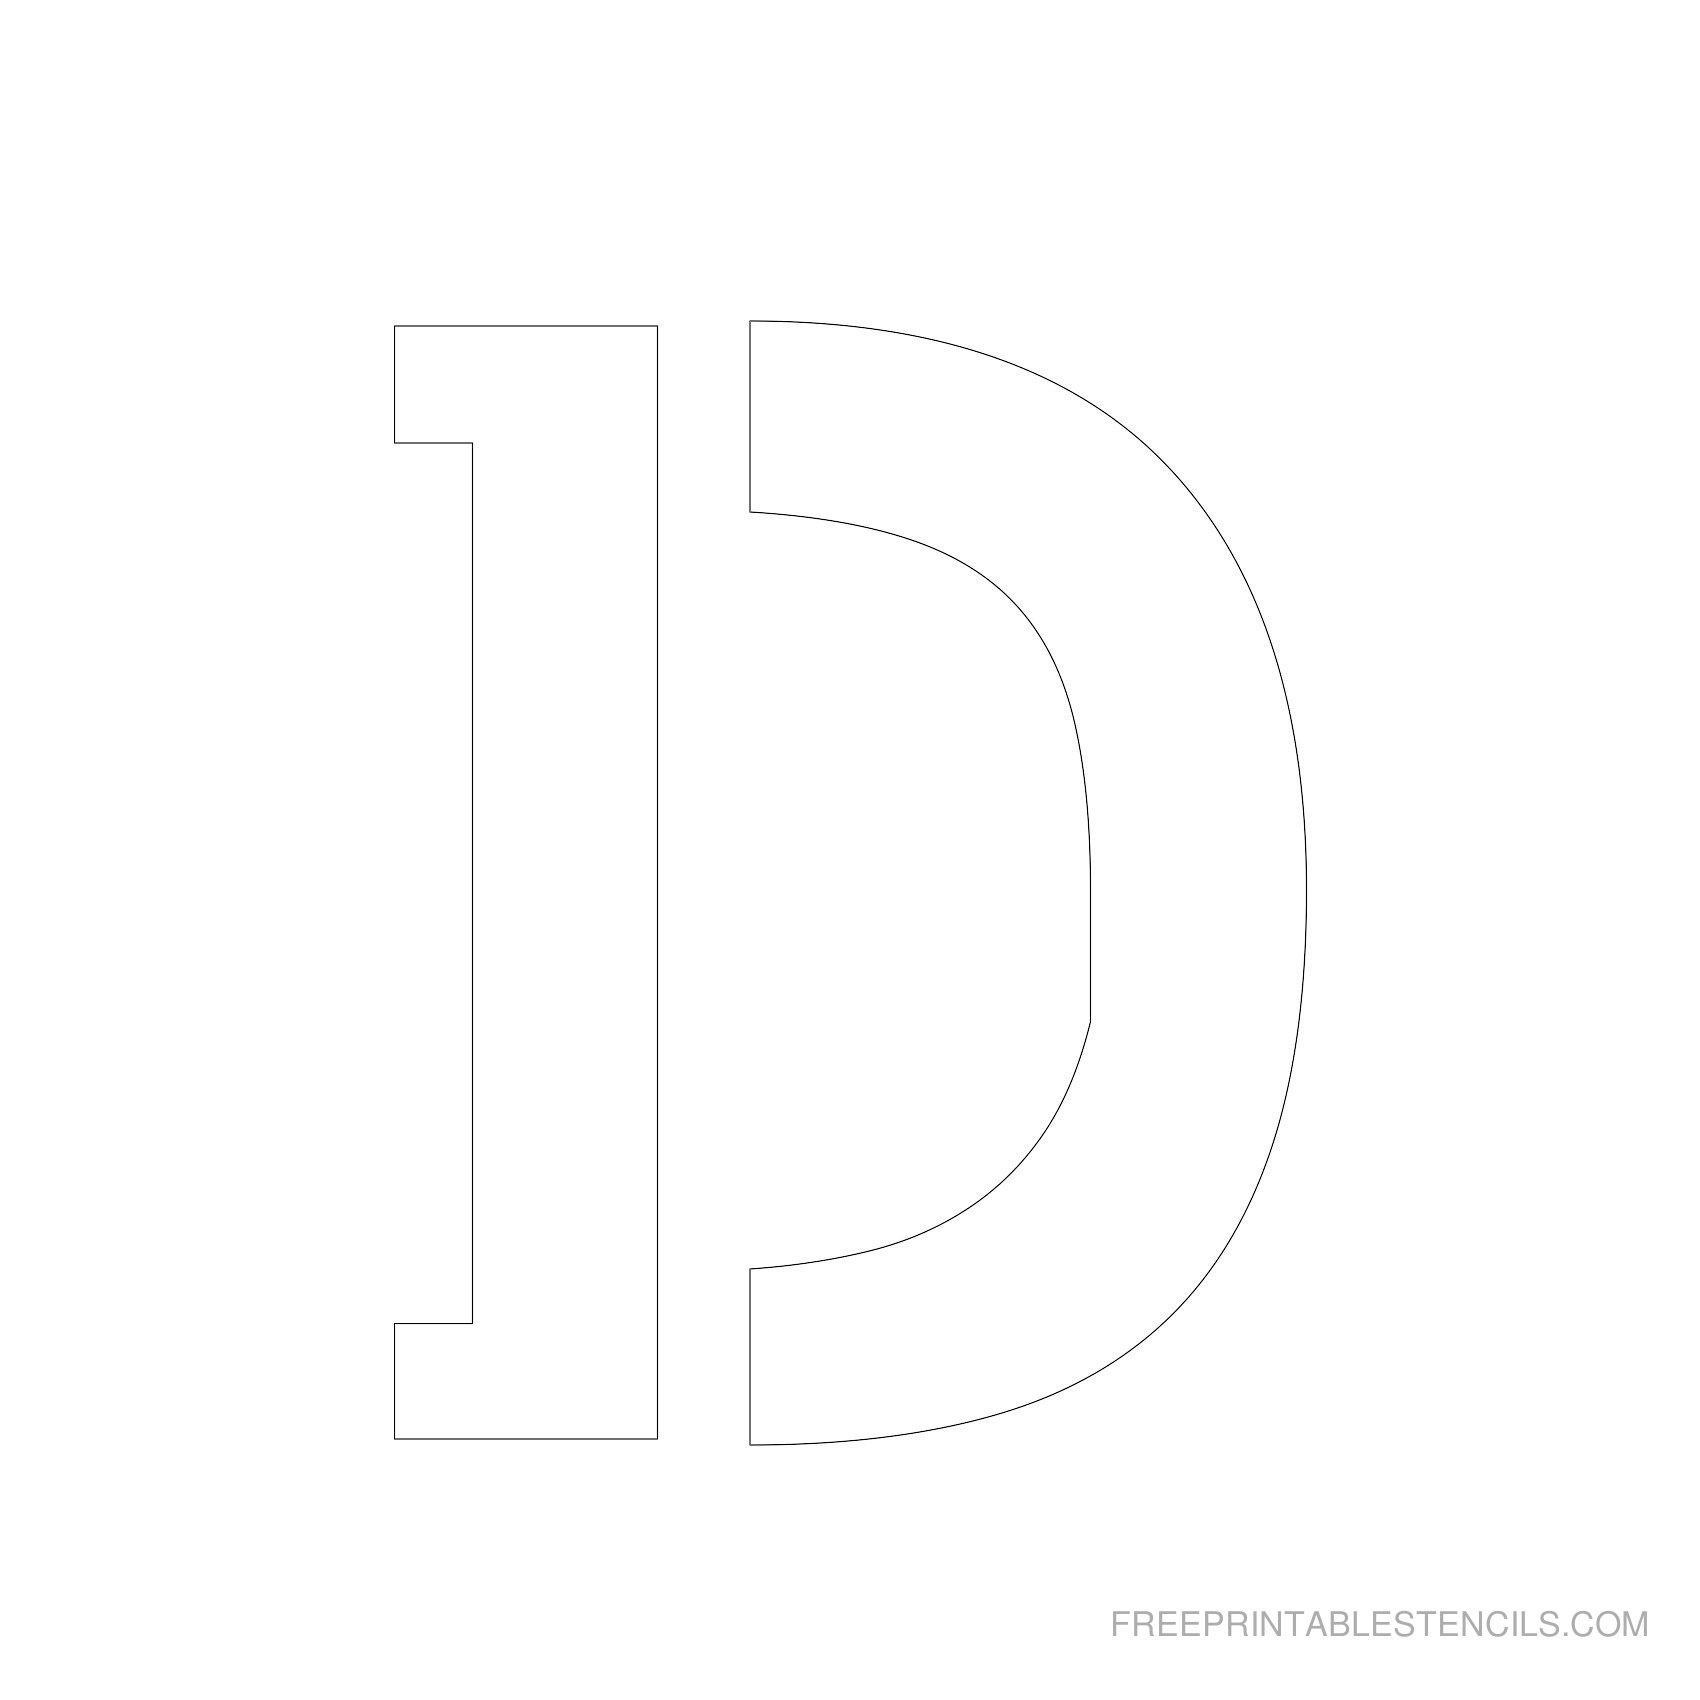 Letter Stencils To Print   Free Printable Stencils - Free Printable Alphabet Stencils Templates